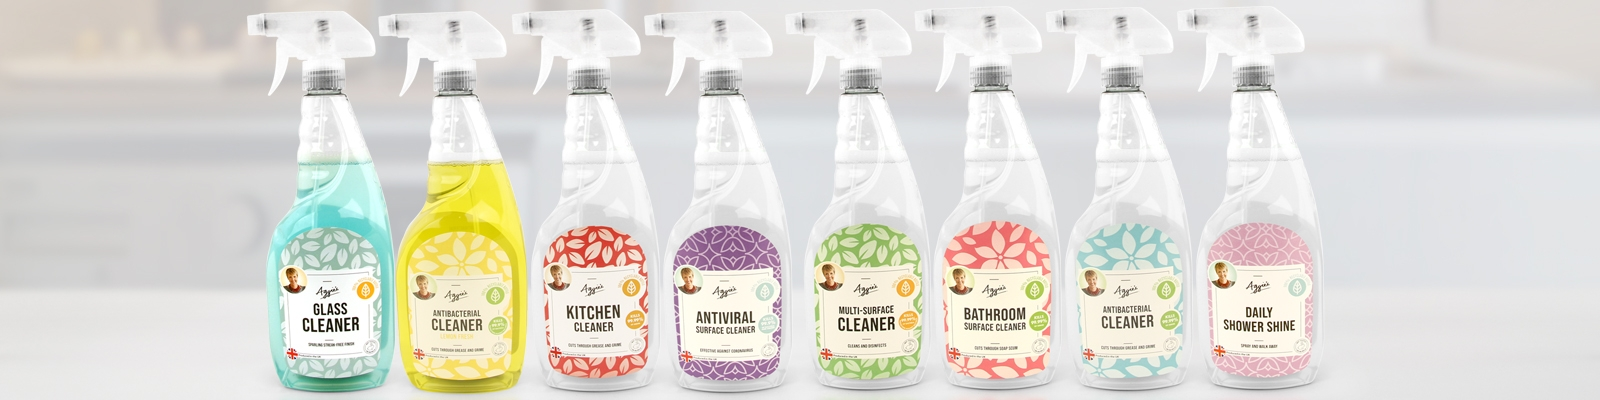 Aggie's Cleaning Range Image